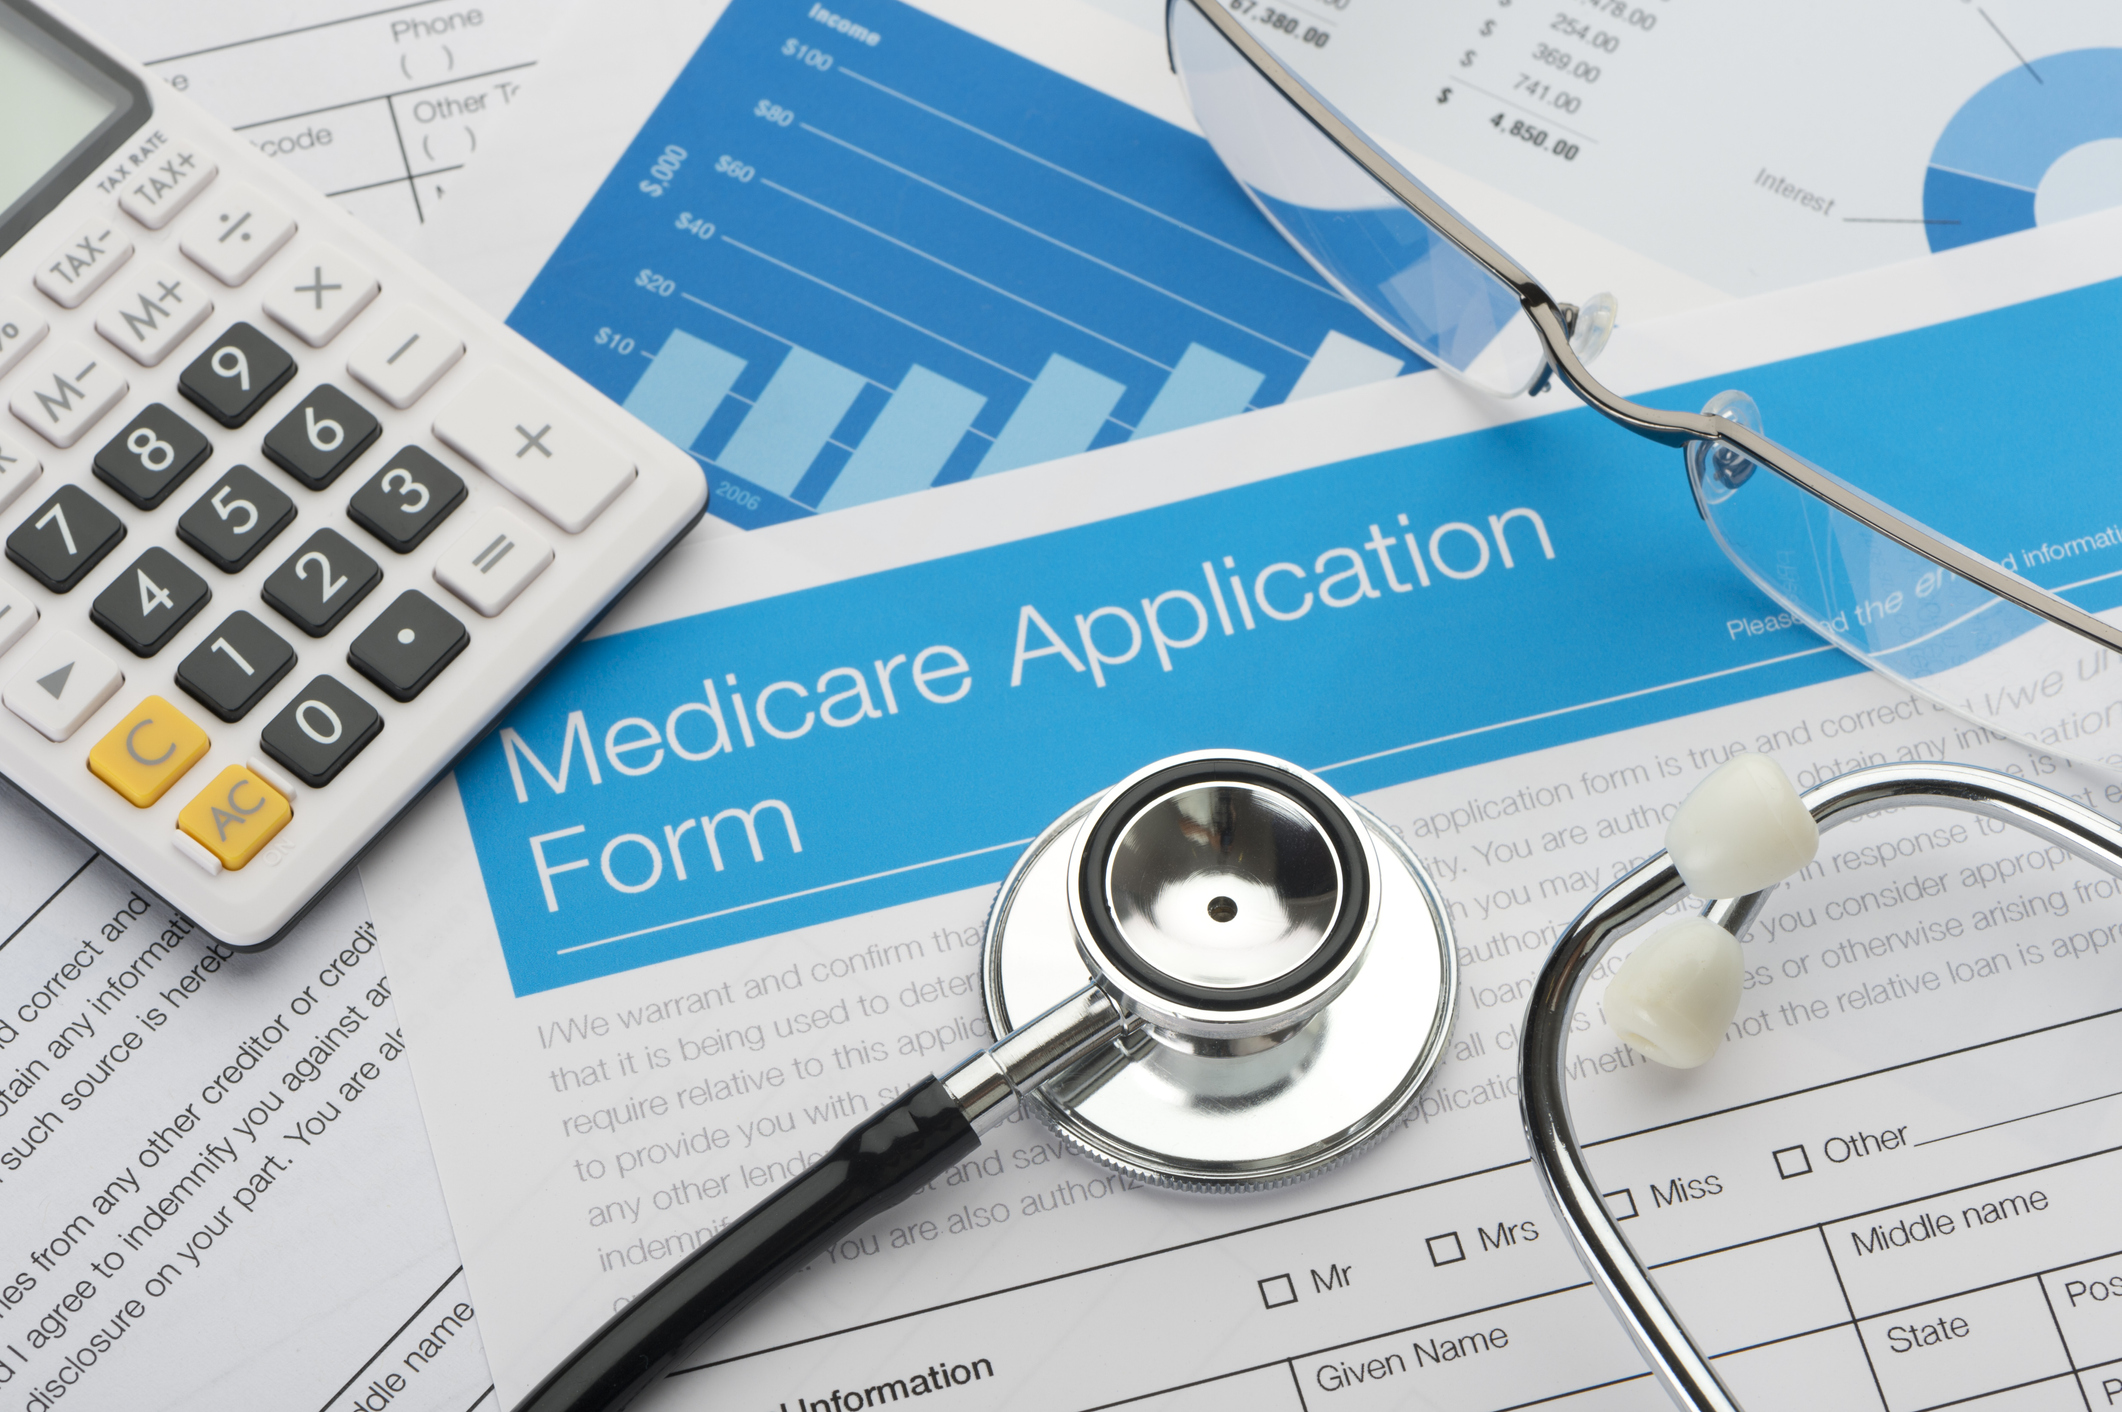 Medicare application form with stethoscope (Getty Images)